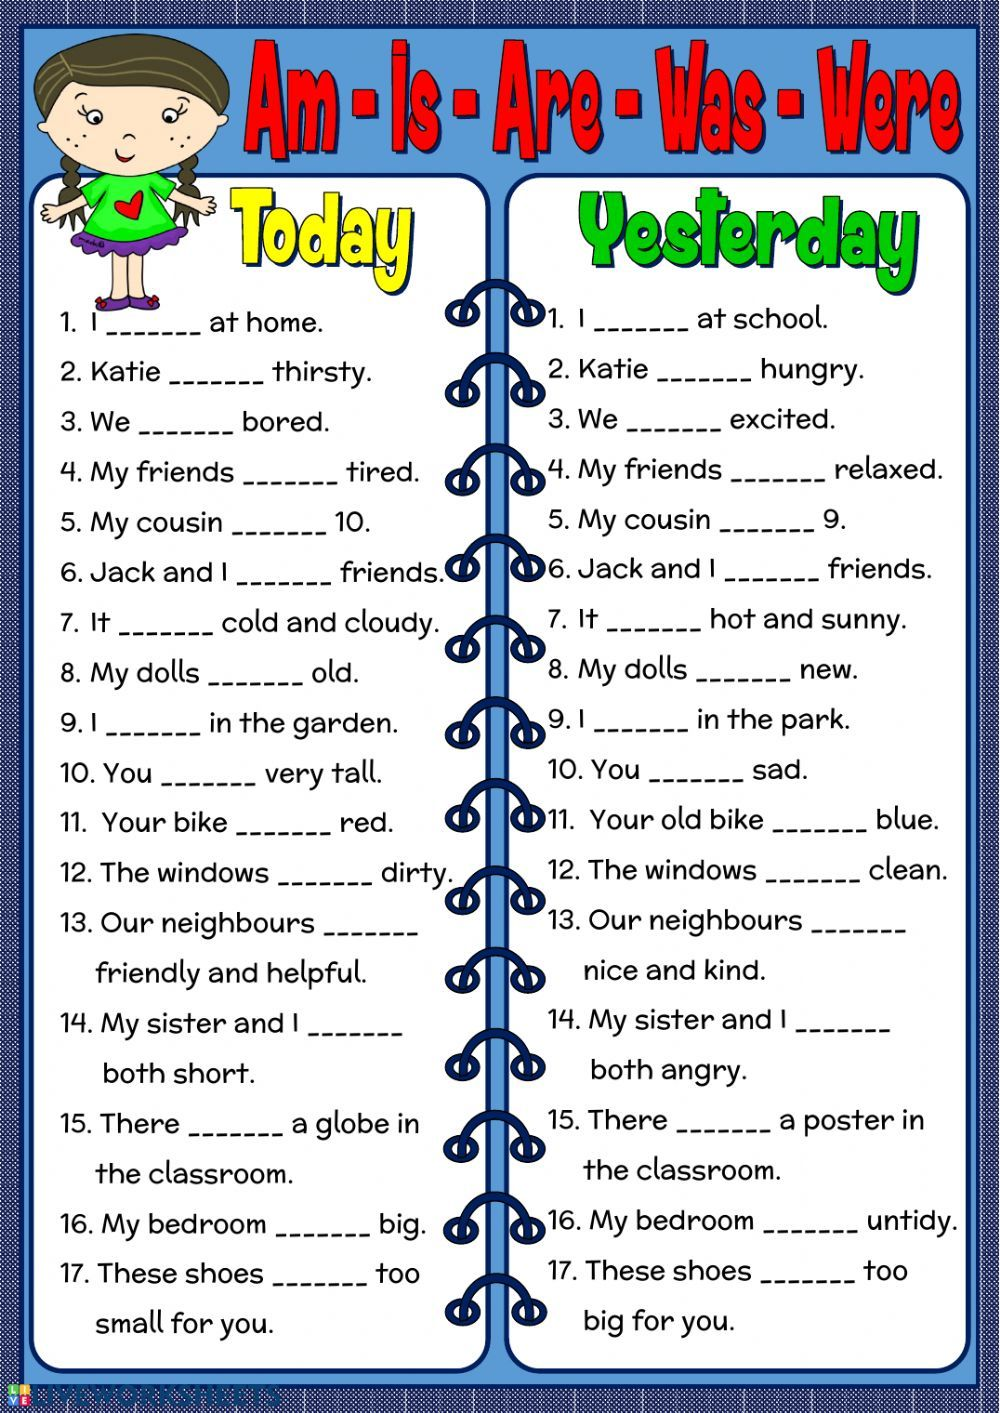 Verb To Be Interactive And Downloadable Worksheet You Can Do The Exercises Onl English Grammar Worksheets English Grammar For Kids English Worksheets For Kids [ 1413 x 1000 Pixel ]